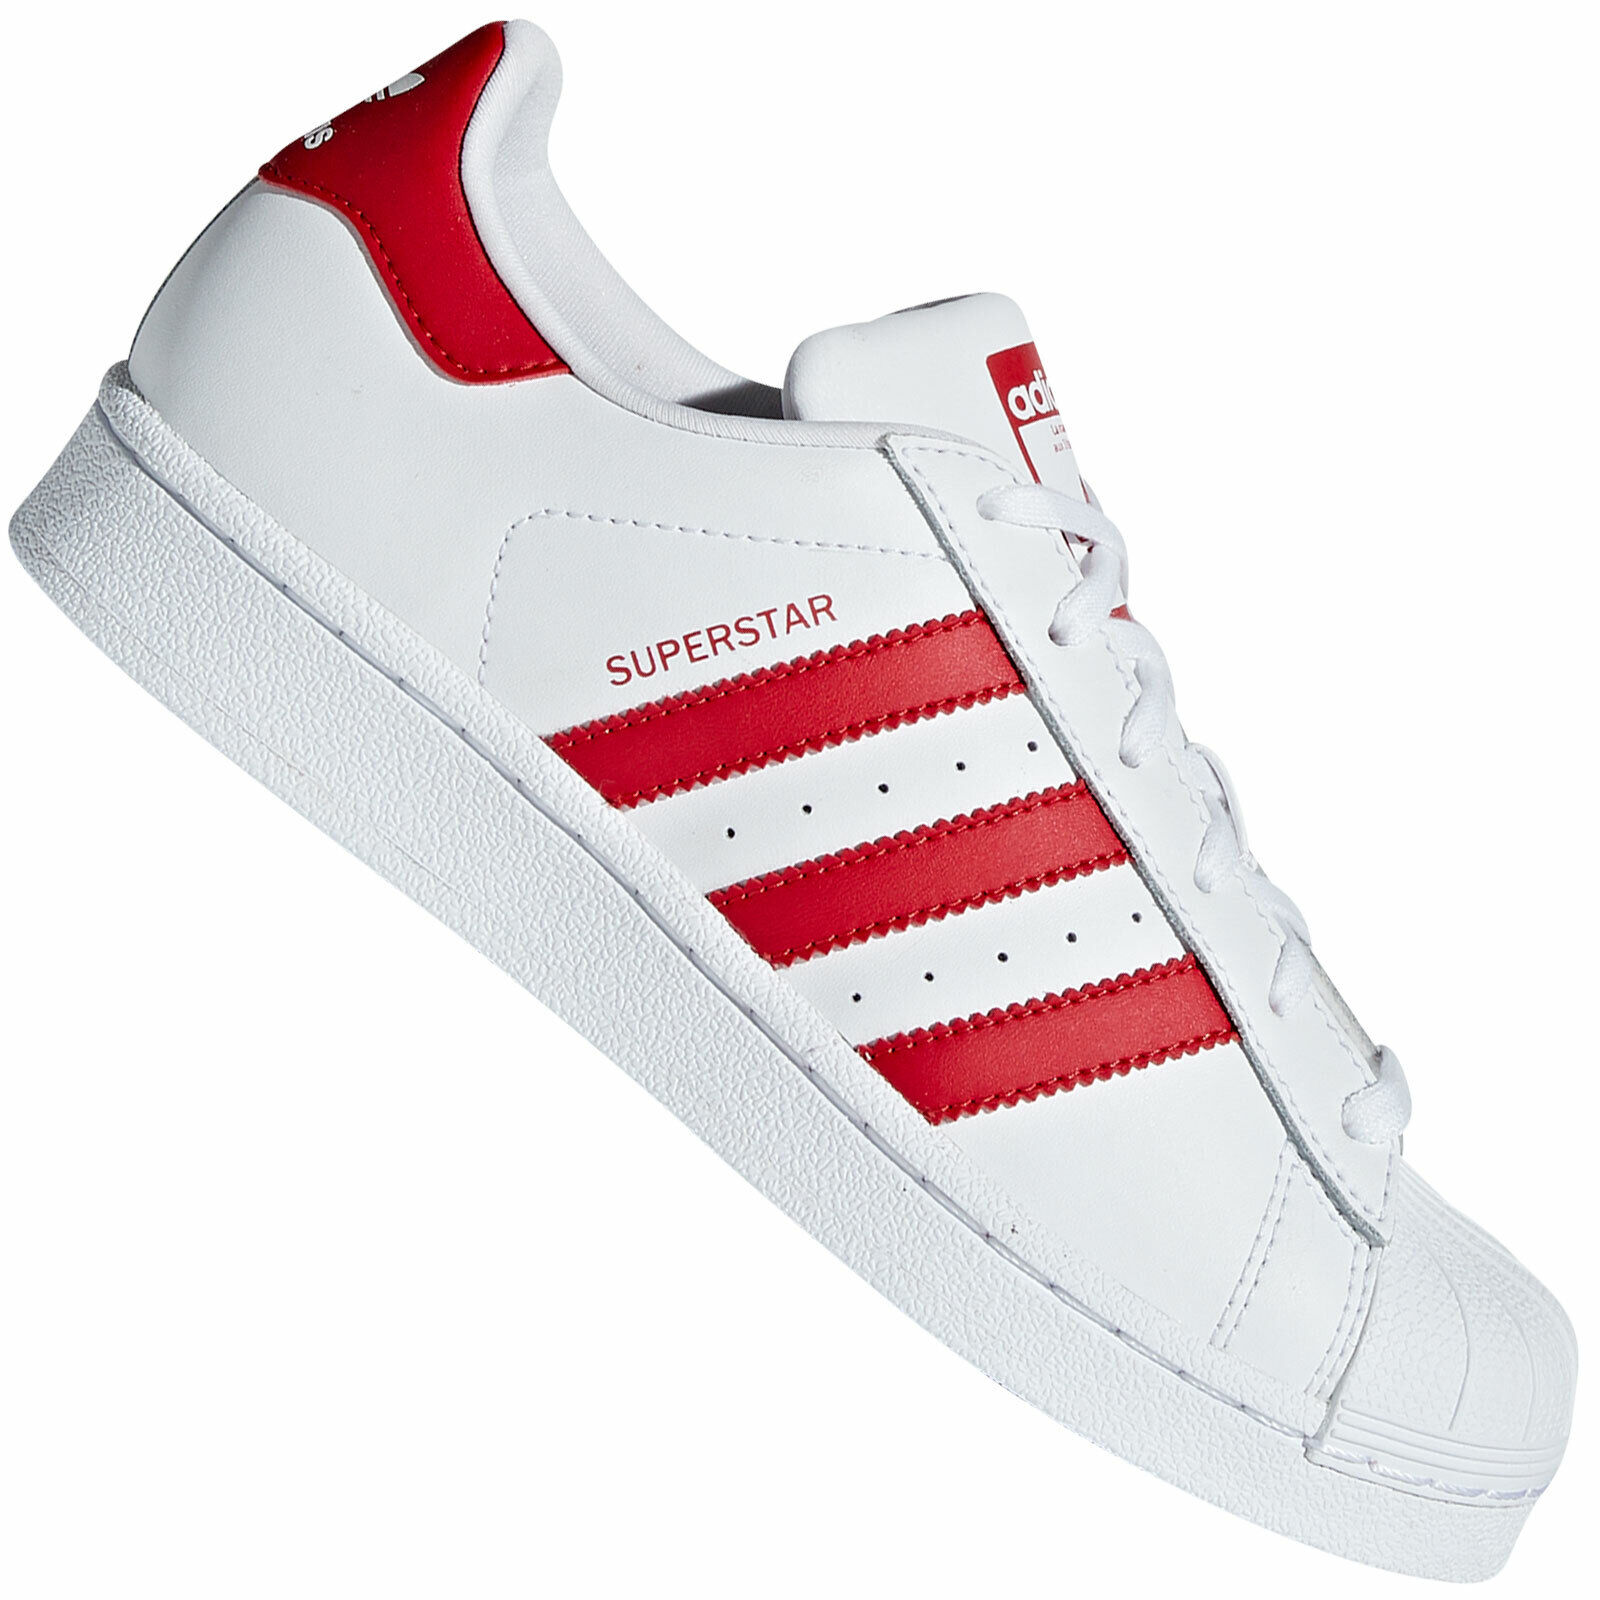 Adidas Originals Superstar Chaussures Baskets de Sport Junior Neuf